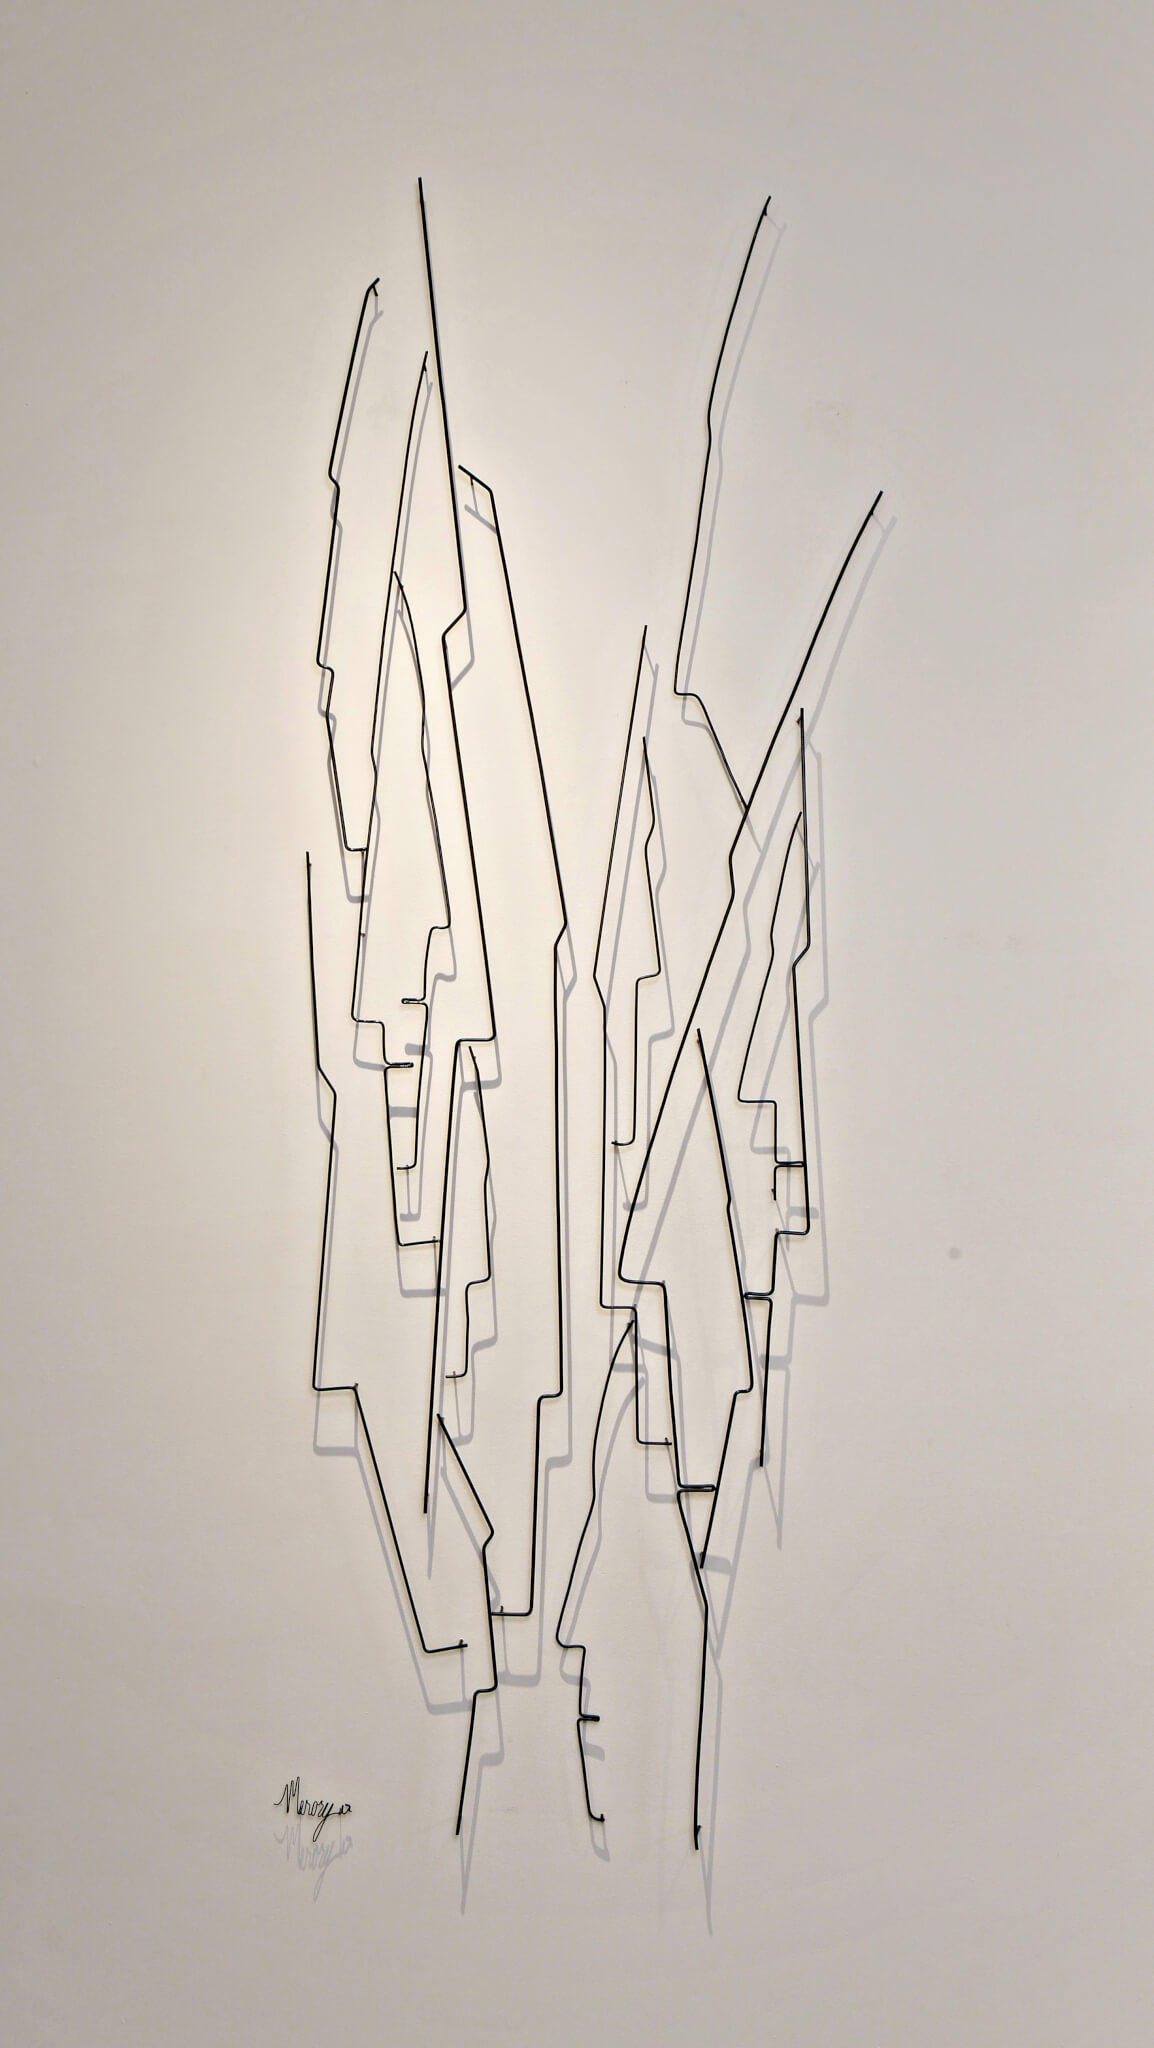 Pamela Merory Durnham, Vertical Landscape #6, wire sculpture, close up